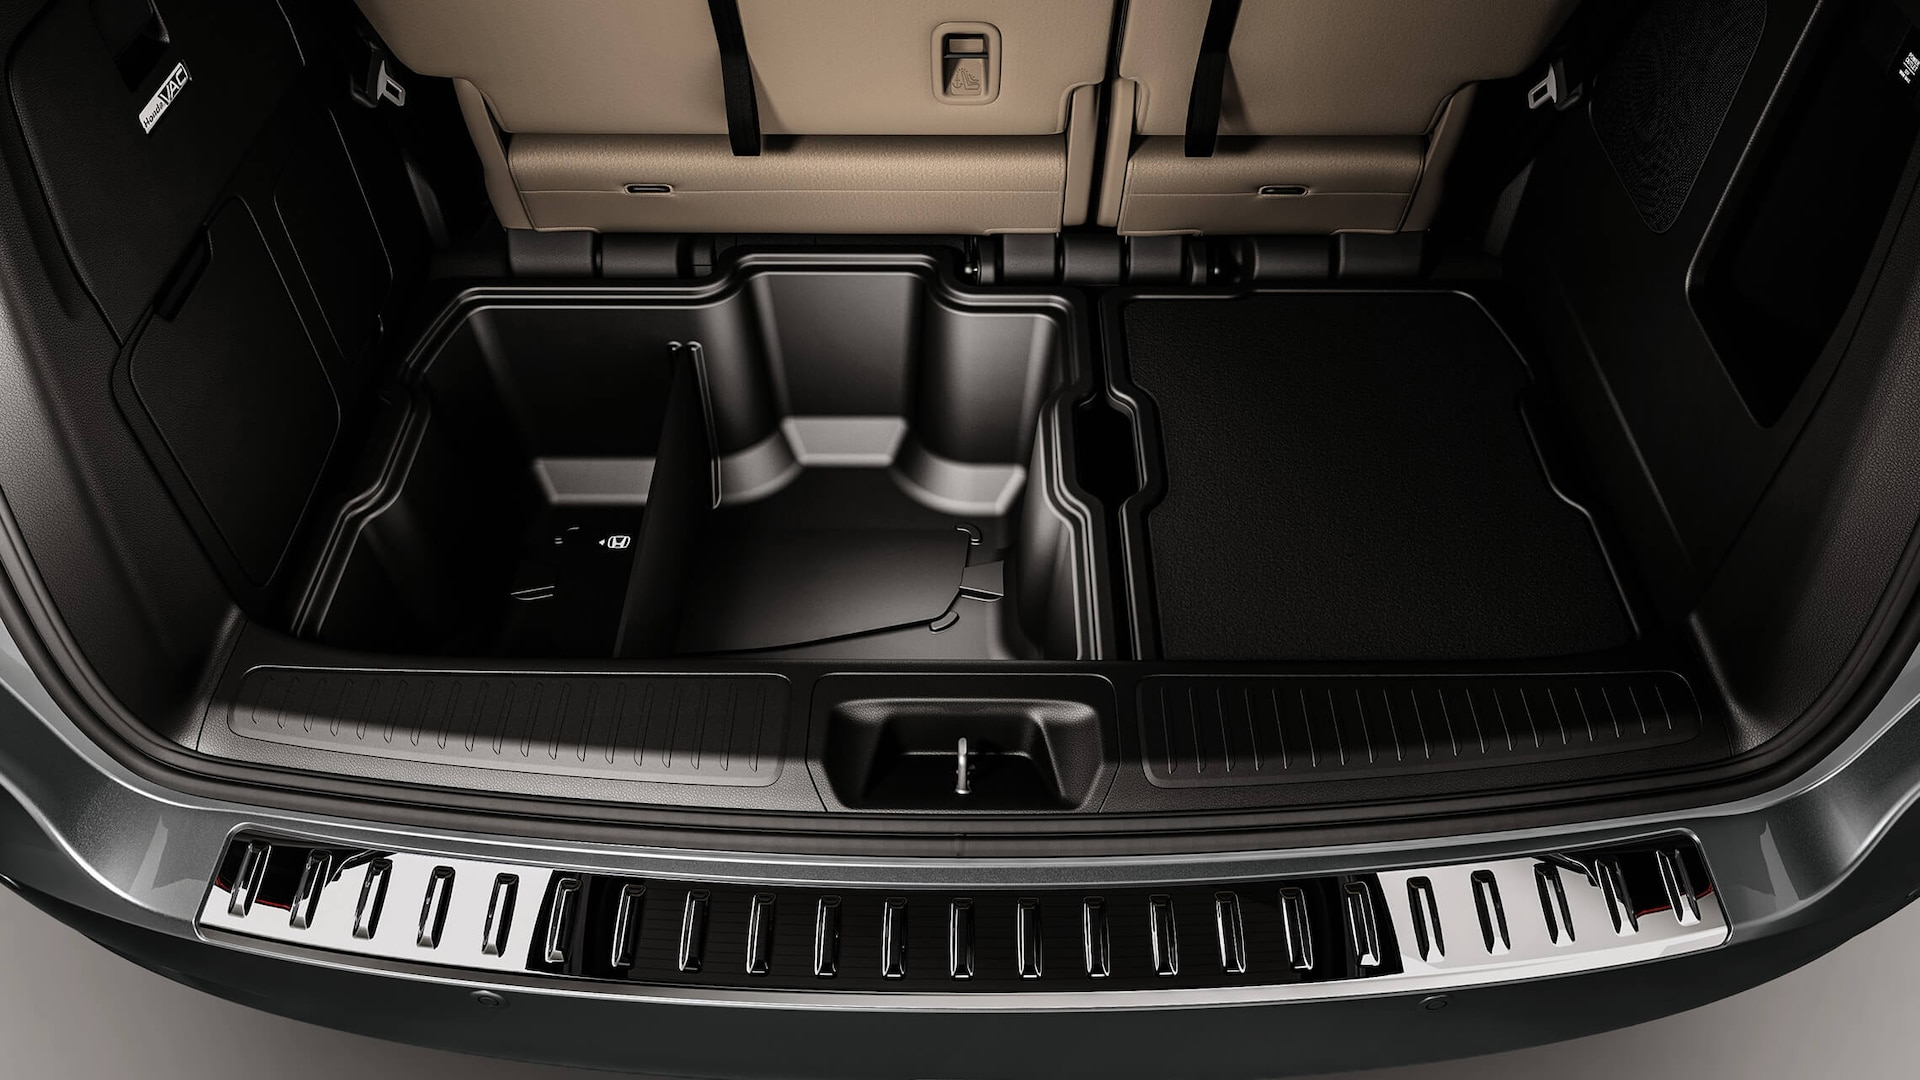 Detail of the 2022 Honda Odyssey accessory cargo bins.